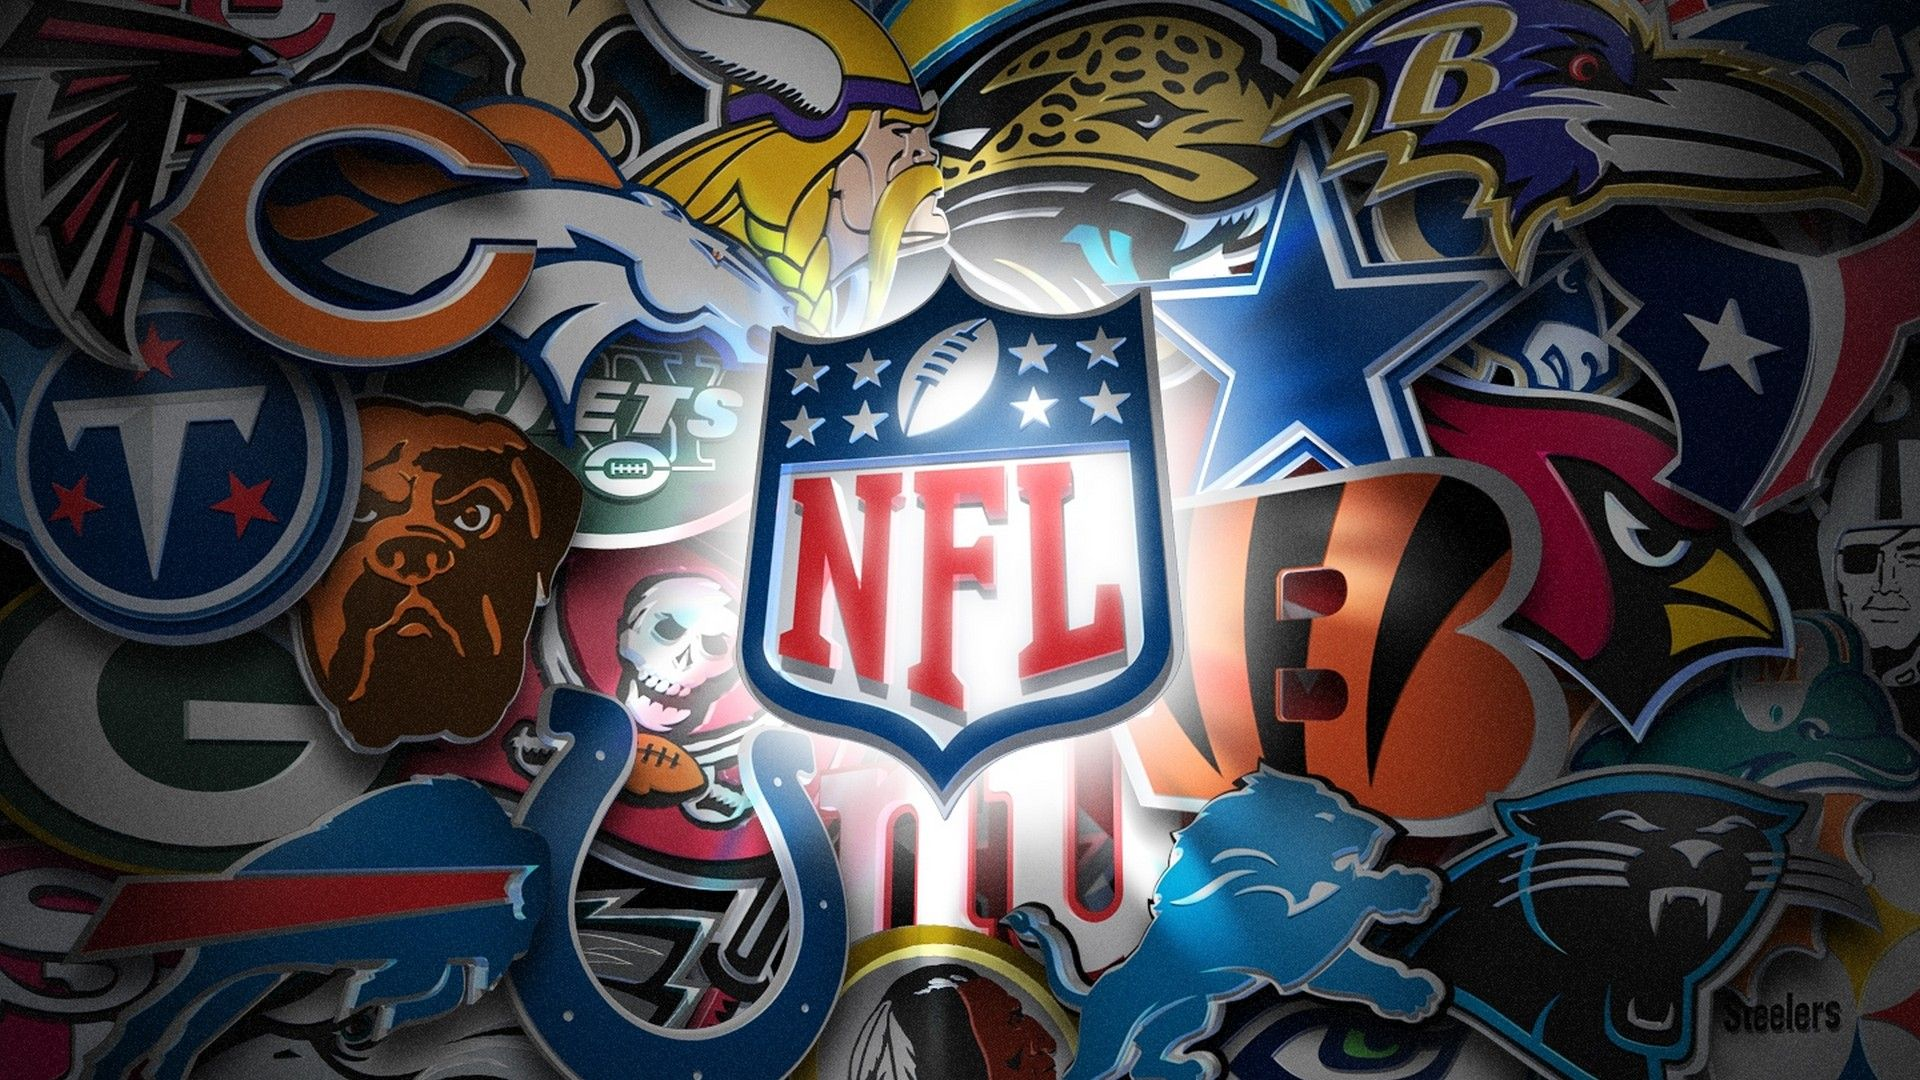 Nfl Wallpapers Nfl Teams Logos Football Wallpaper Nfl Logo